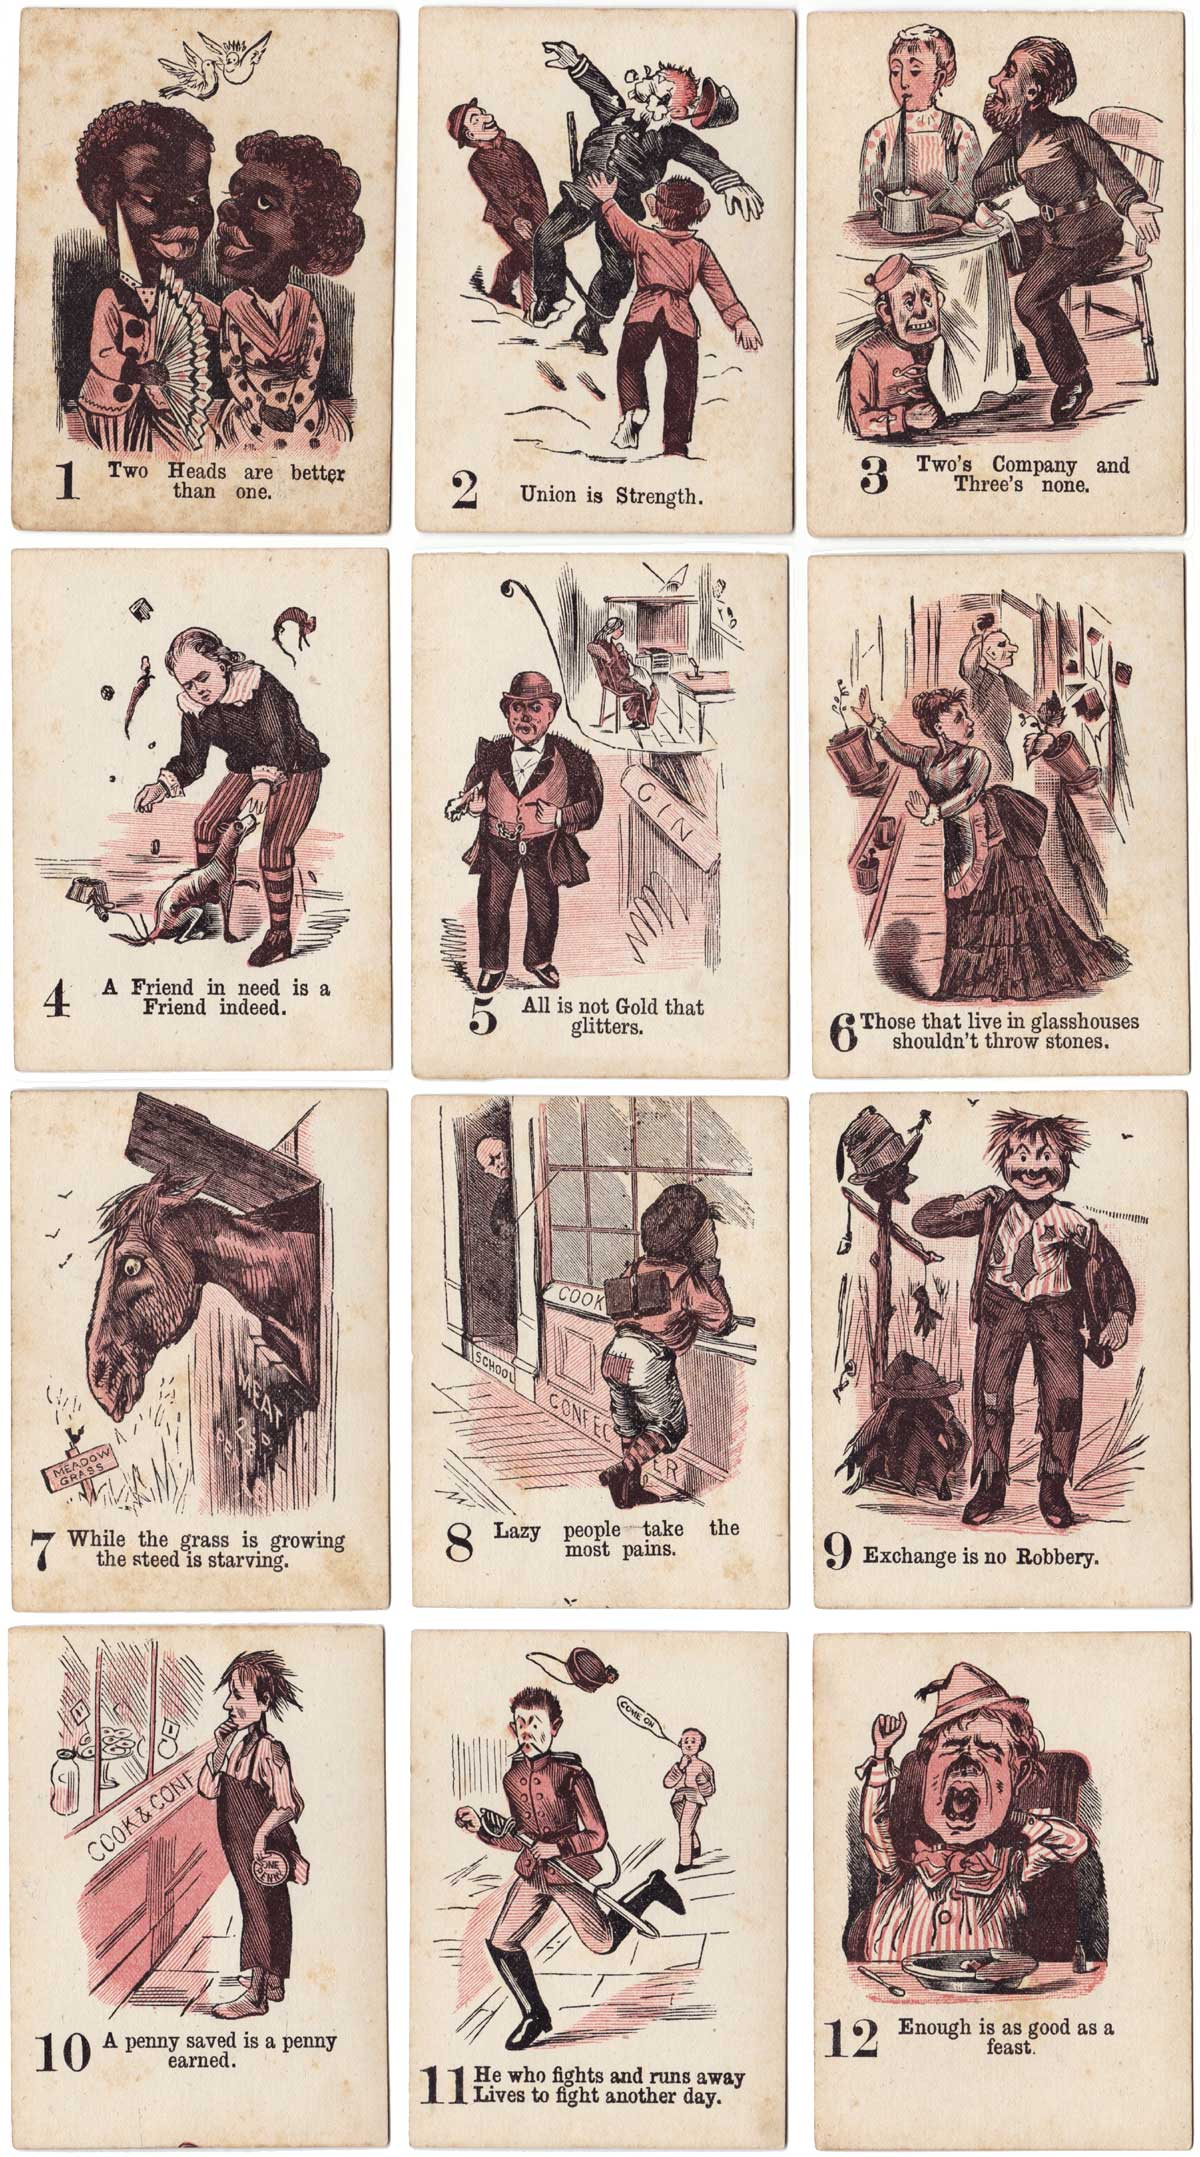 The Game of Nap published by Multum in Parvo Ltd, London, c.1900